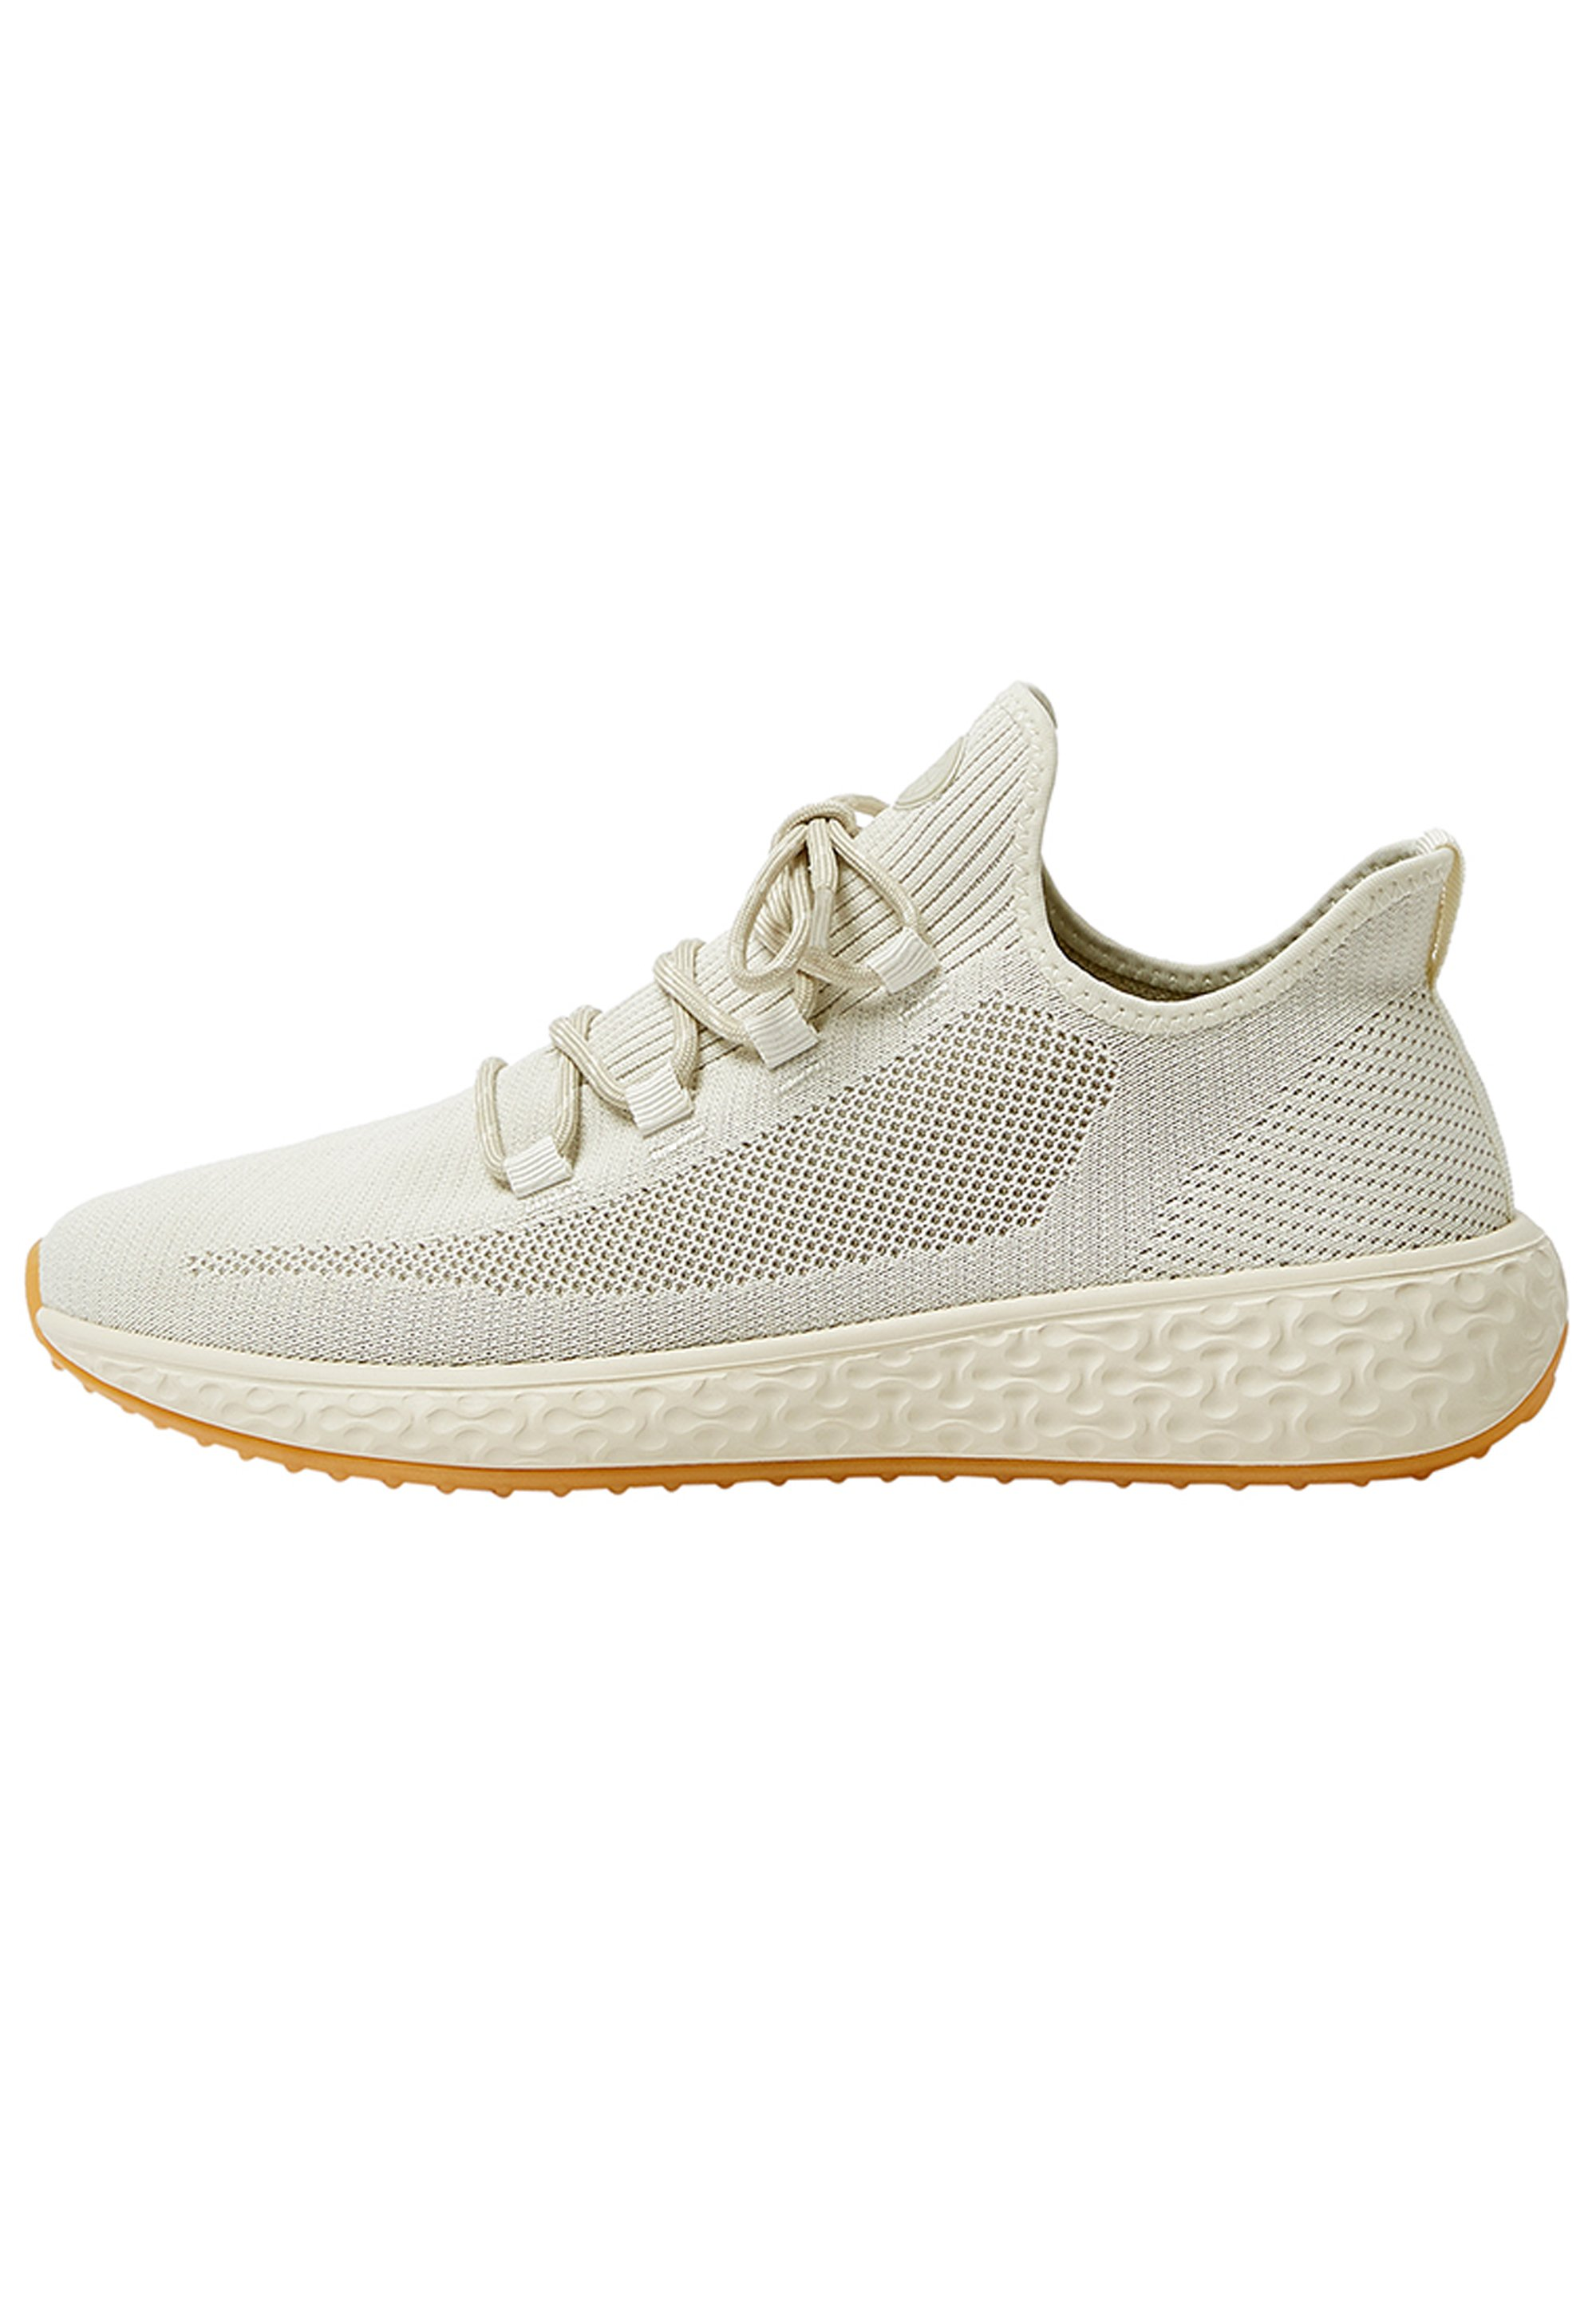 PULL&BEAR SNEAKER IM REGULAR-FIT IN STRICKOPTIK 12320540 - Sneakersy niskie - beige